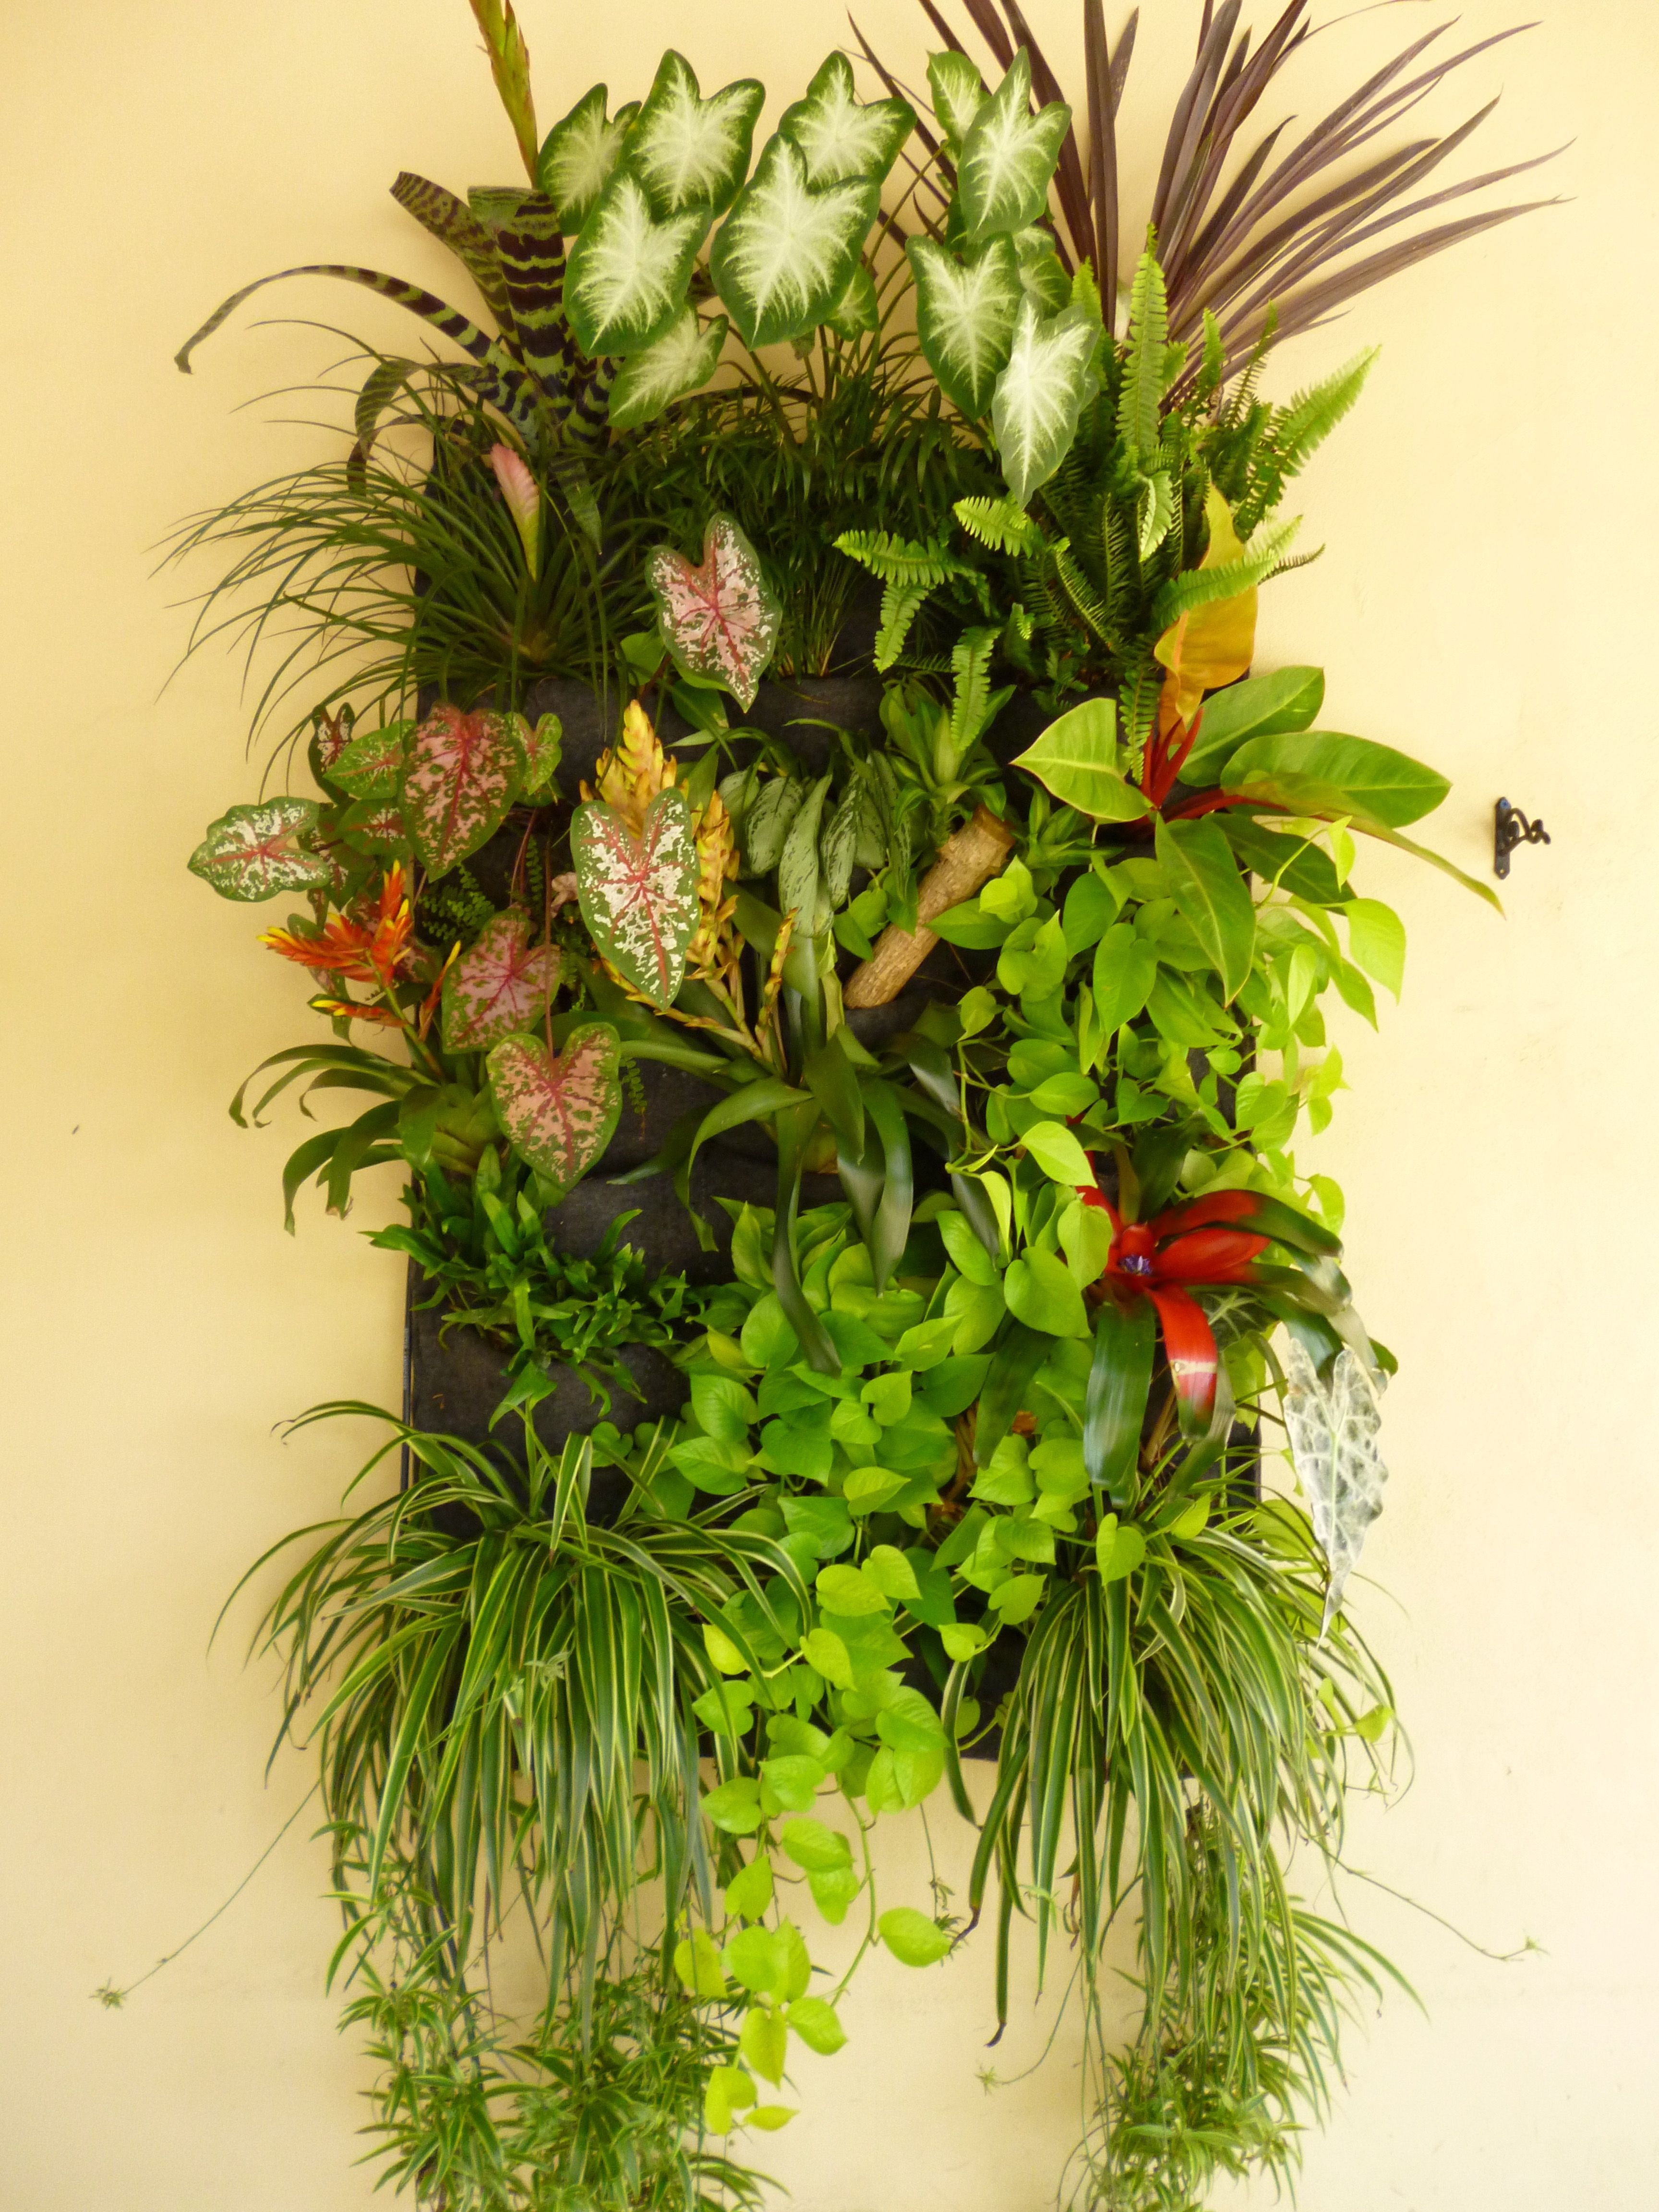 Famous Woolly Pocket Living Wall Planter Crest - The Wall Art ...